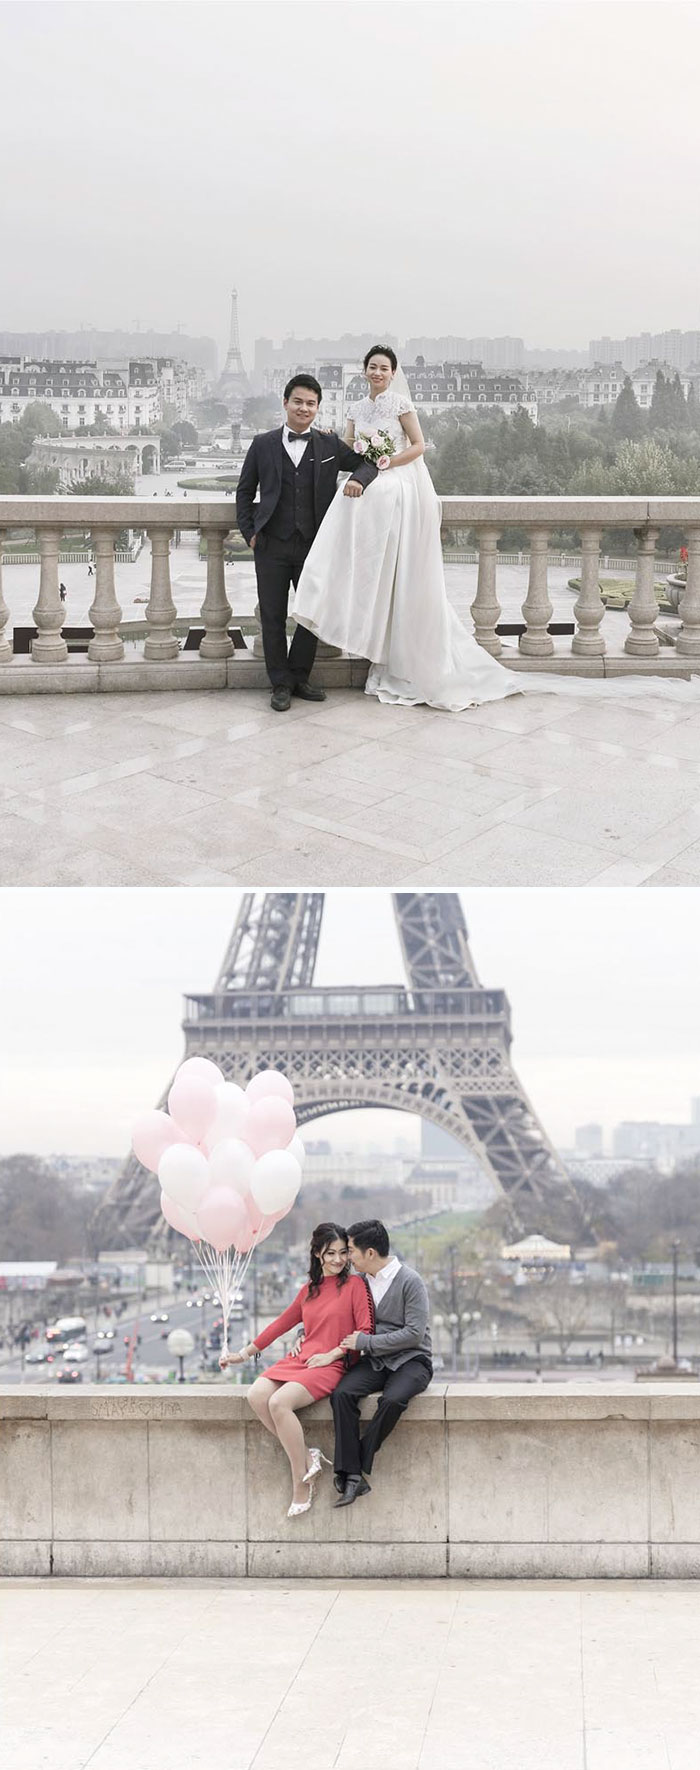 Top: China, Bottom: Paris